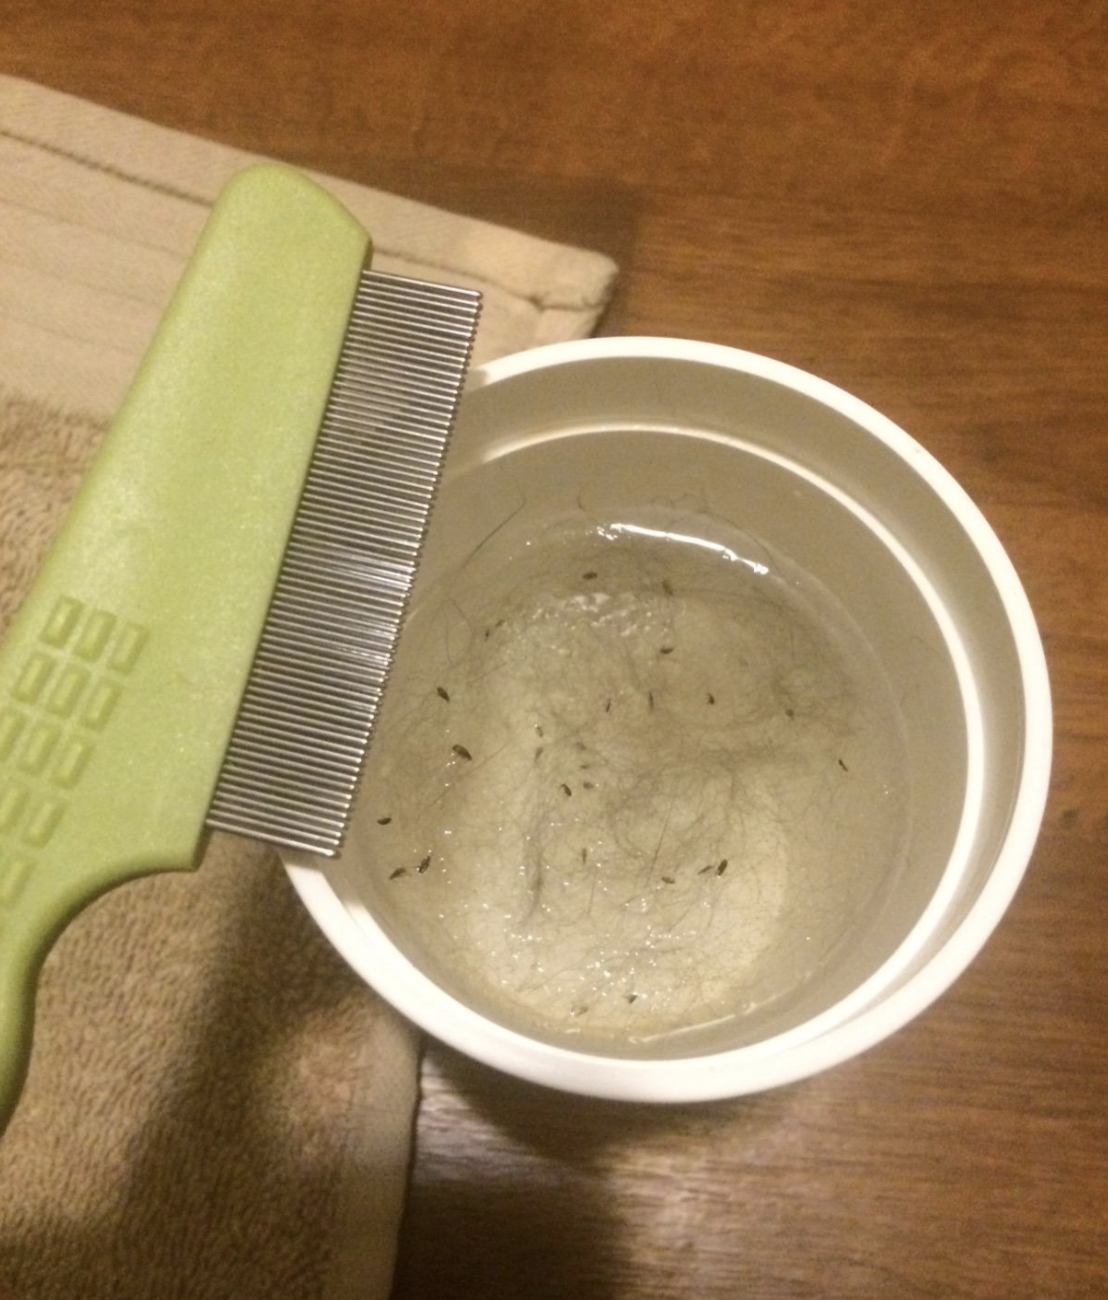 reviewer photo of green comb next to cup filled with water and fleas